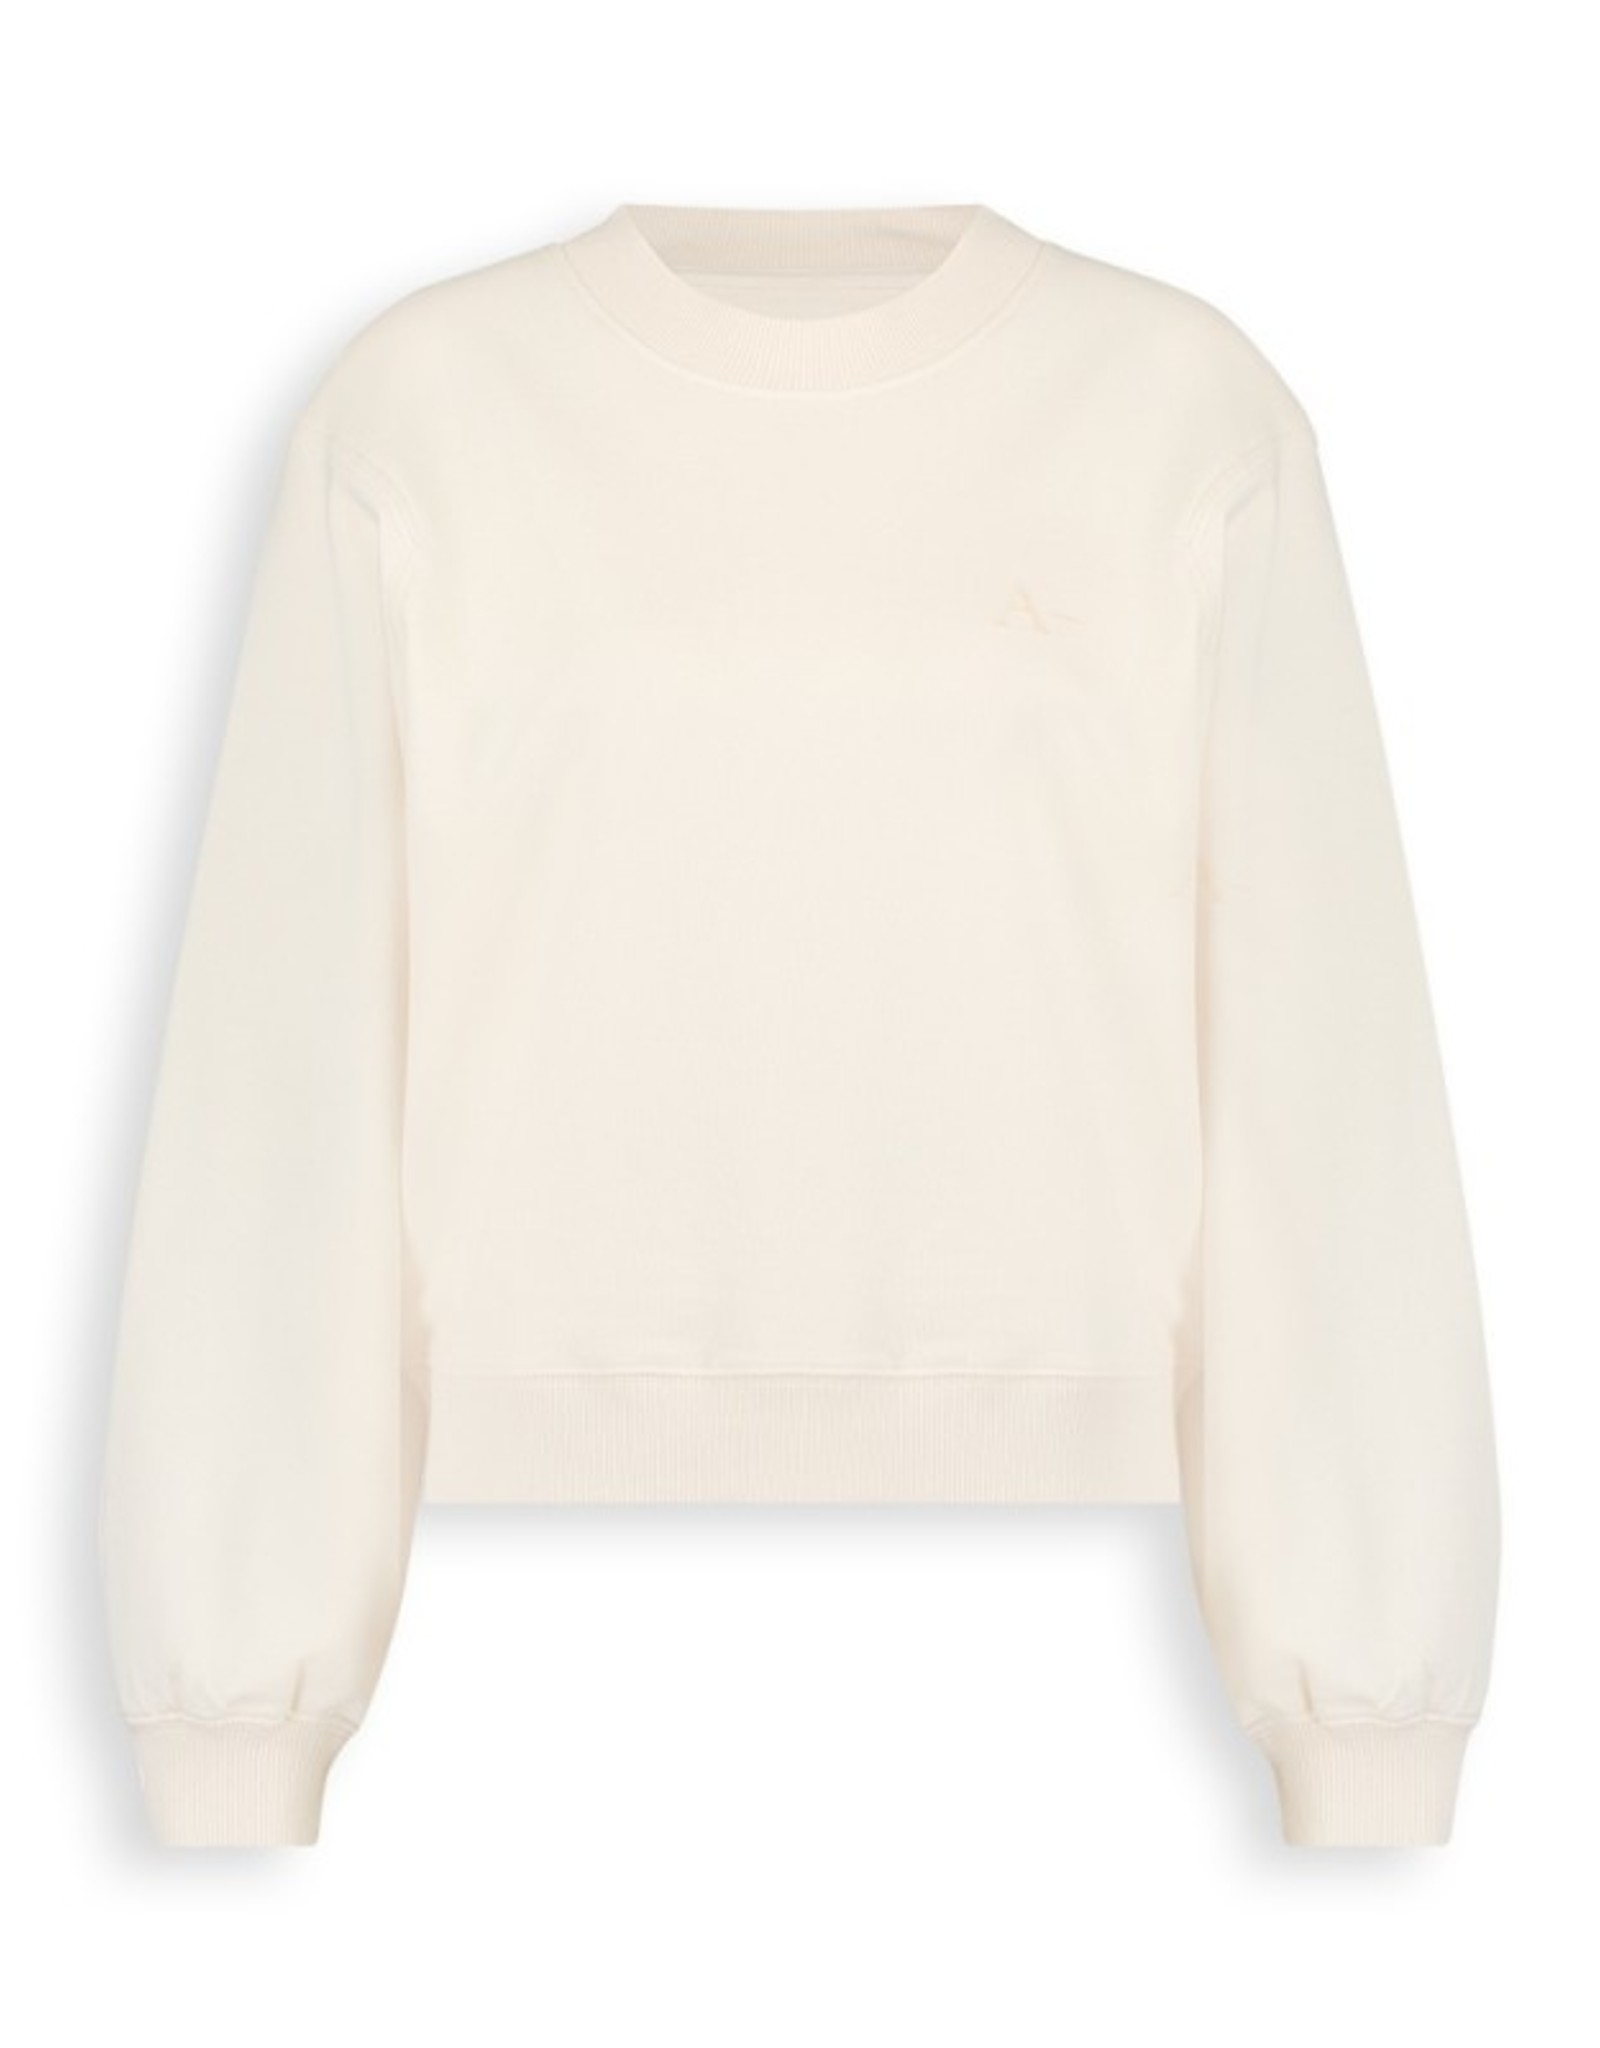 Another Label 'A' Sweater Beige - Another-Label